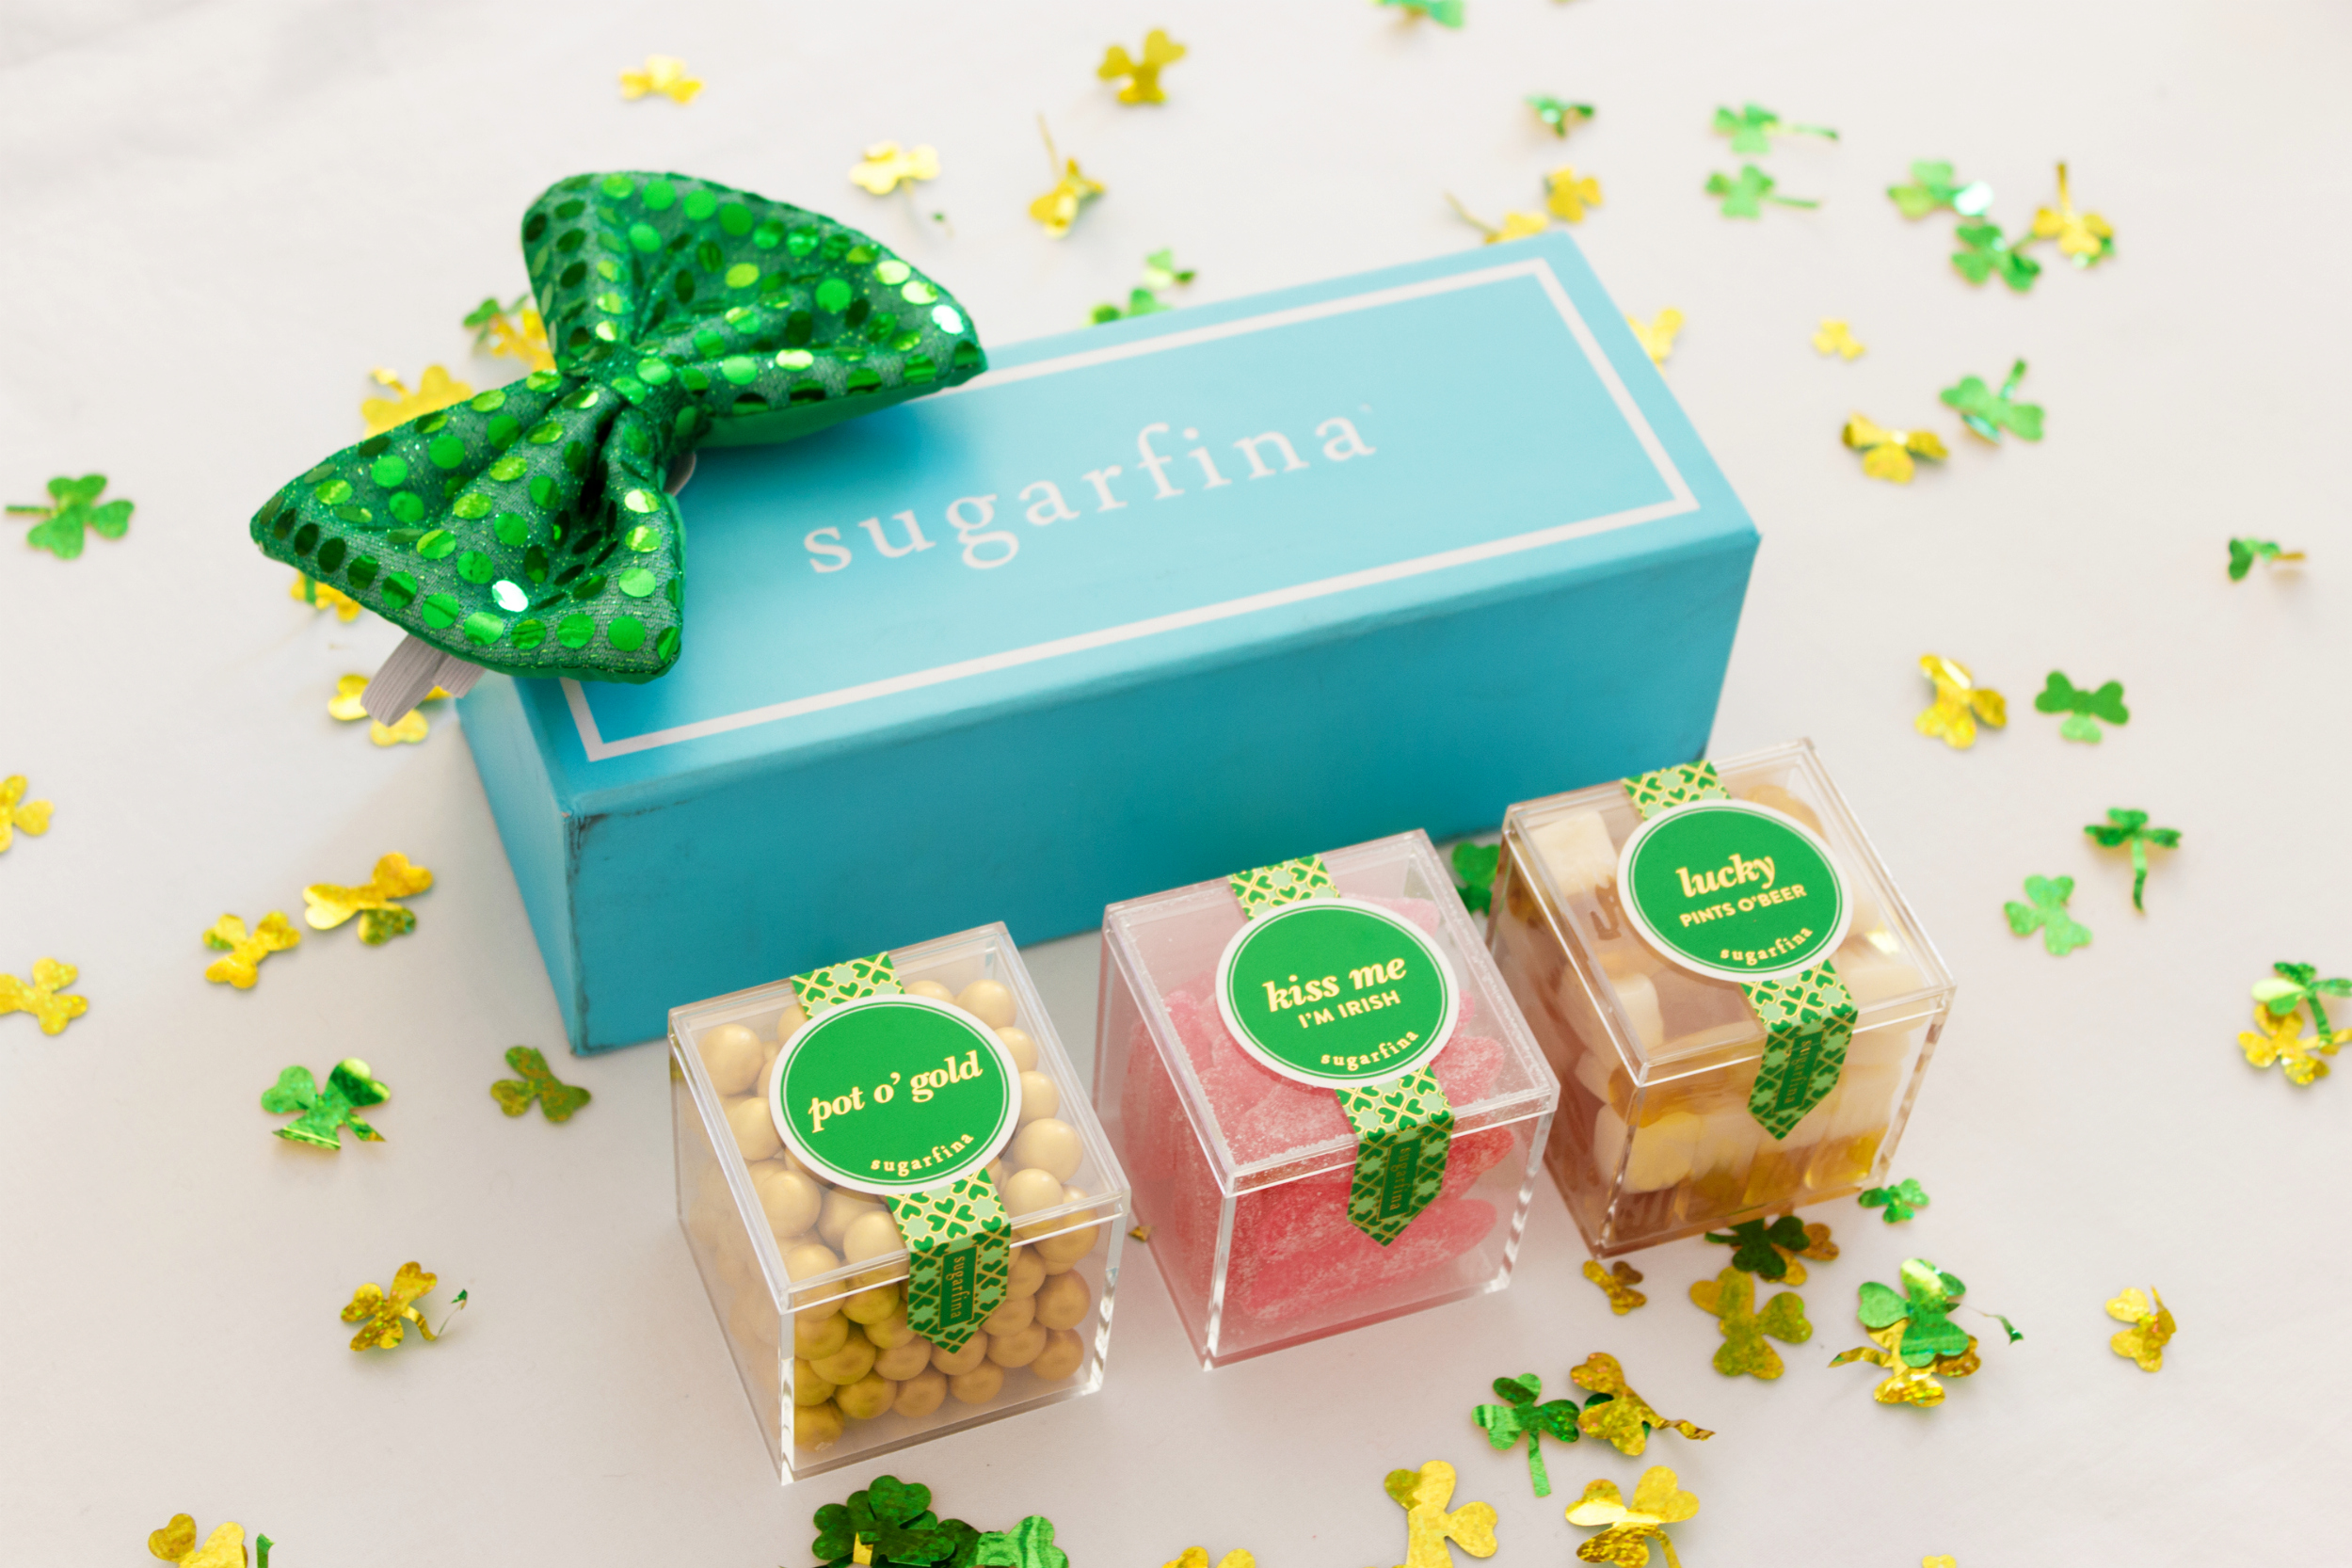 Sugarfina luck of the irish st patricks day candy